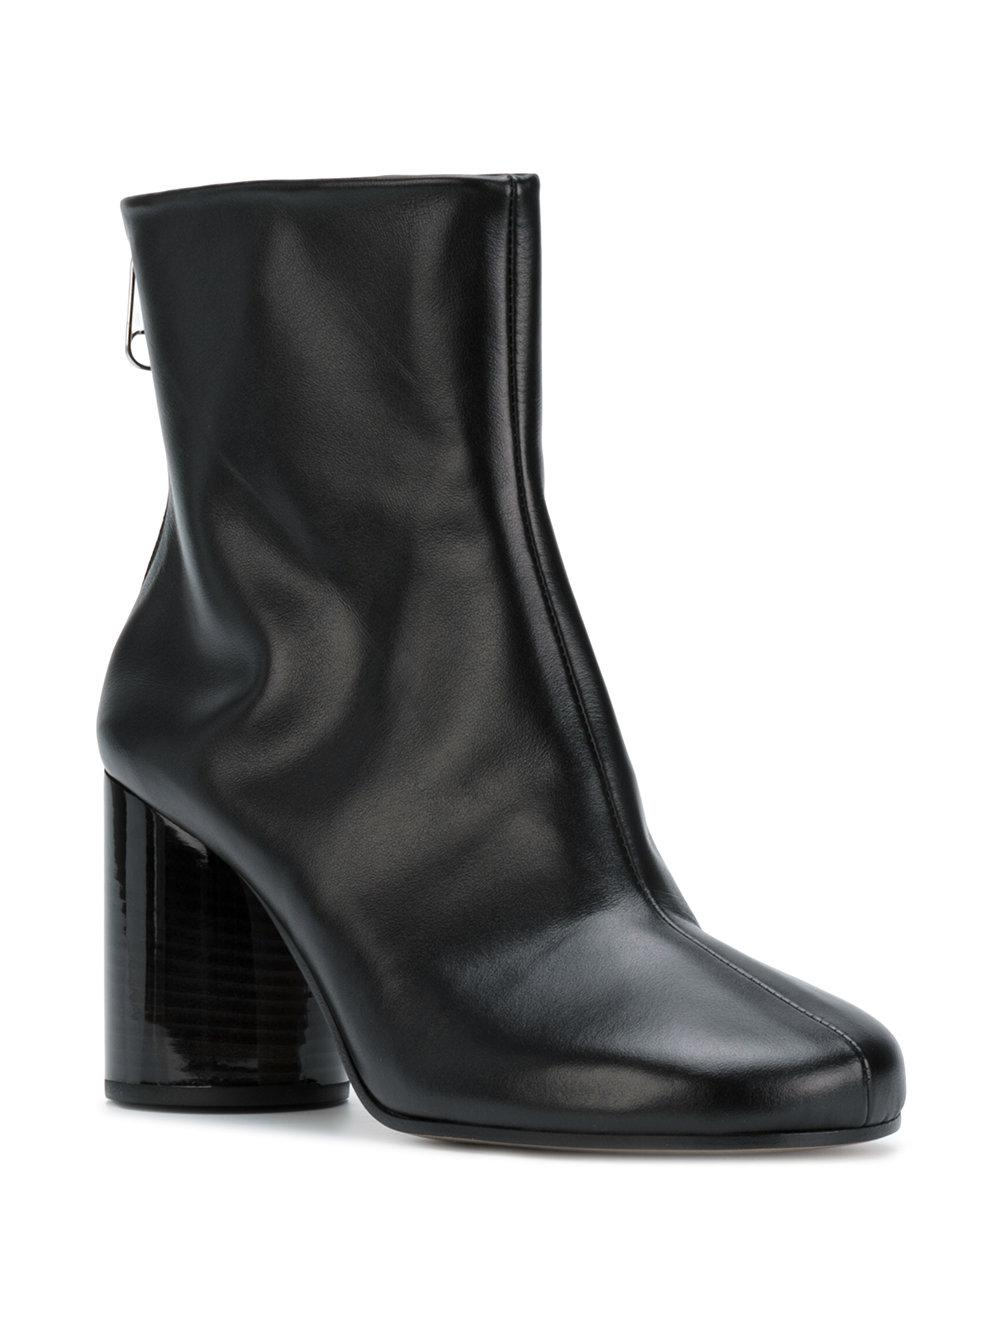 Maison Margiela Leather Socks Ankle Boots in Black